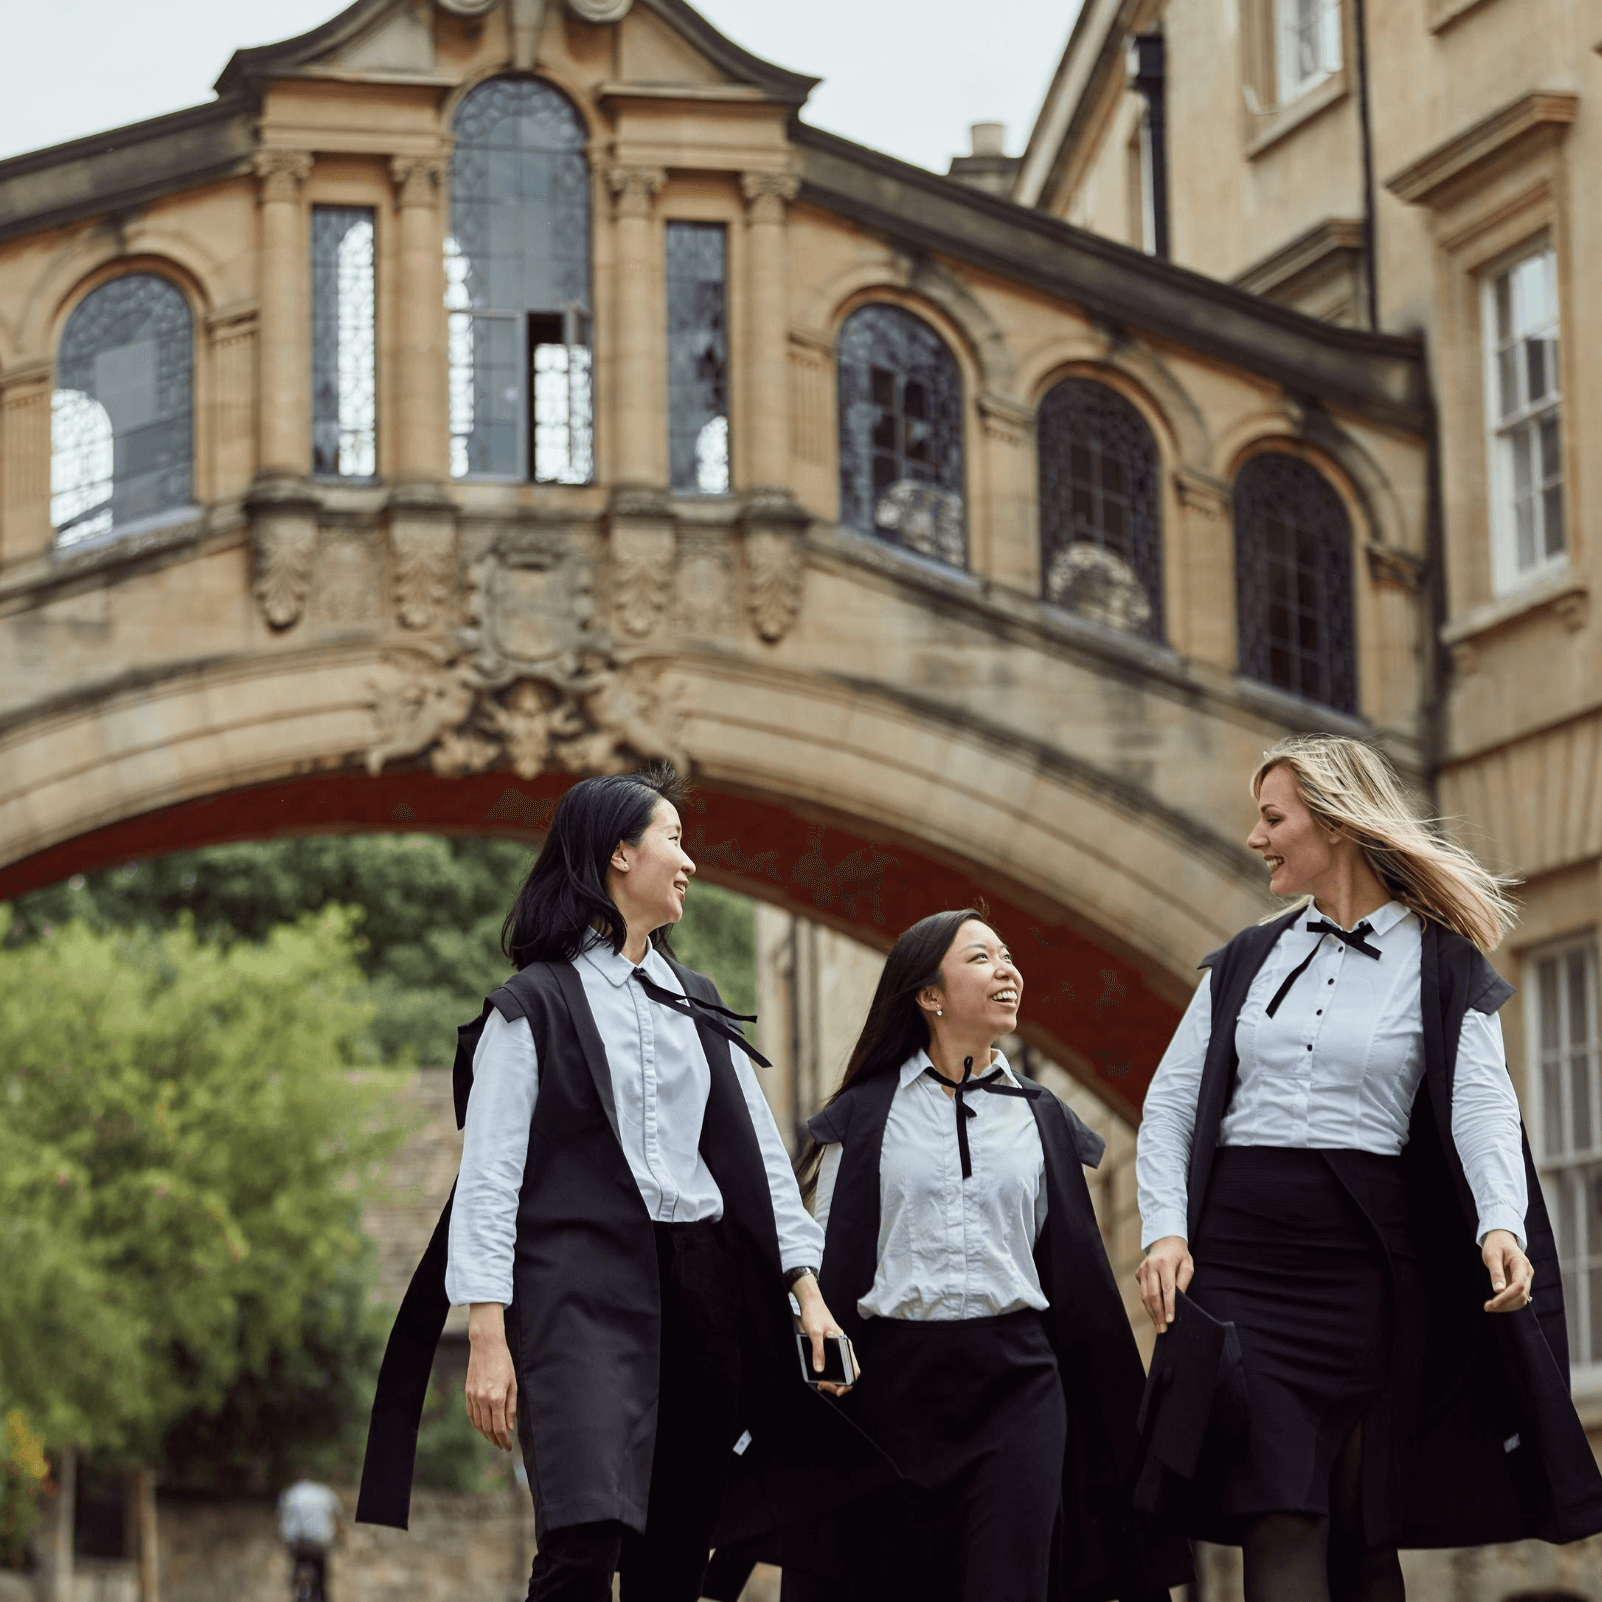 MBA students in Oxford